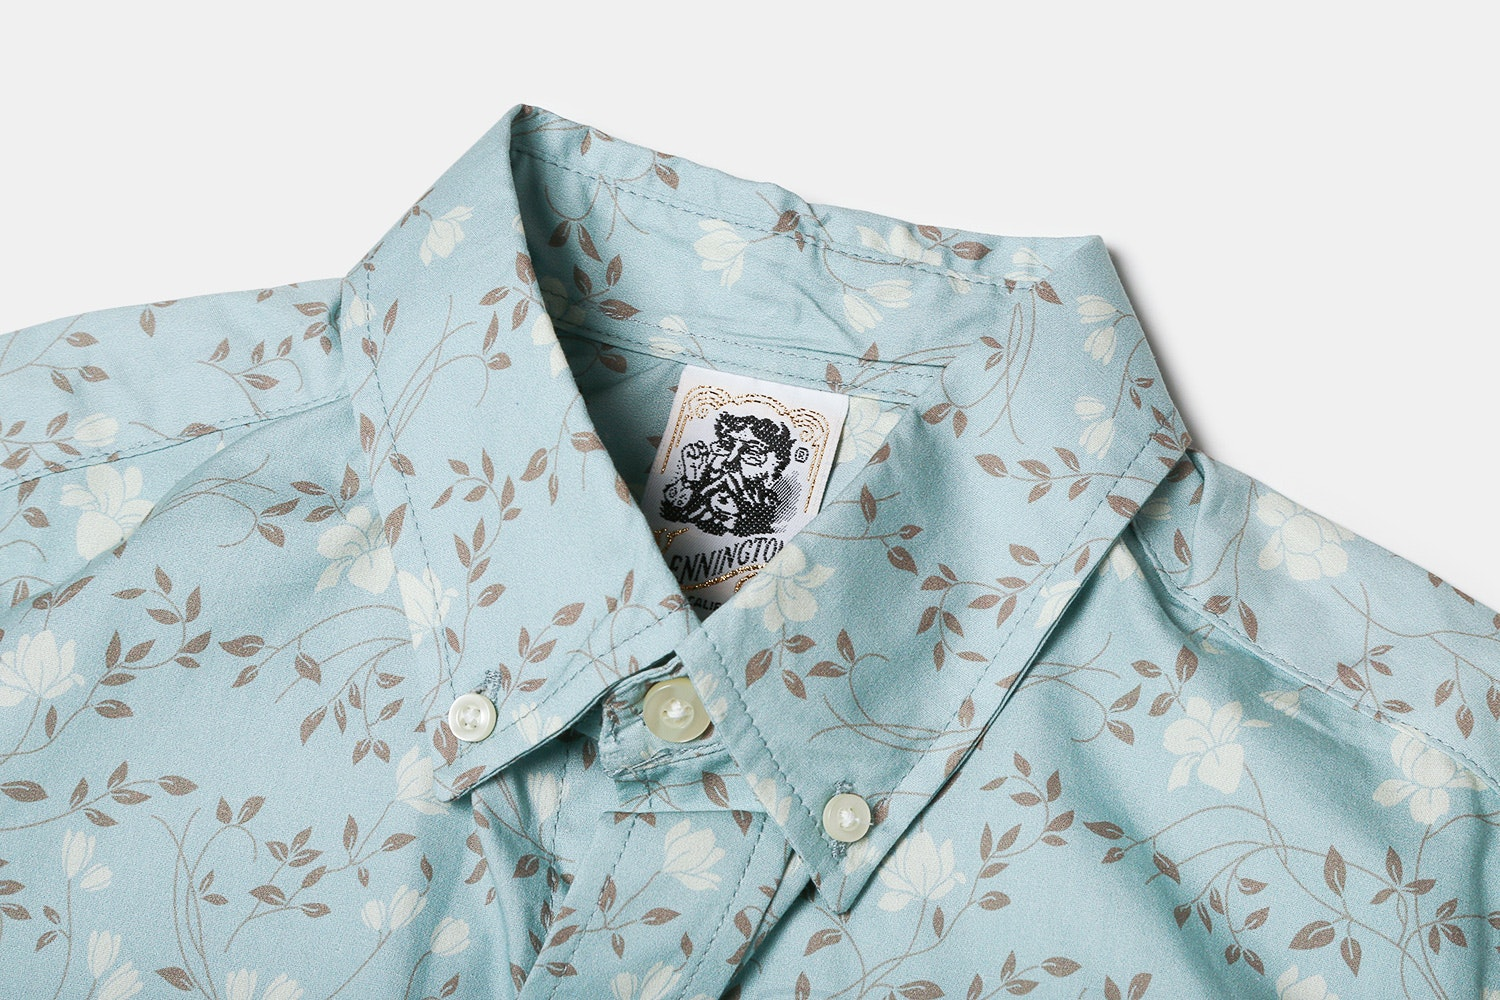 Kennington Short-Sleeve Shirts